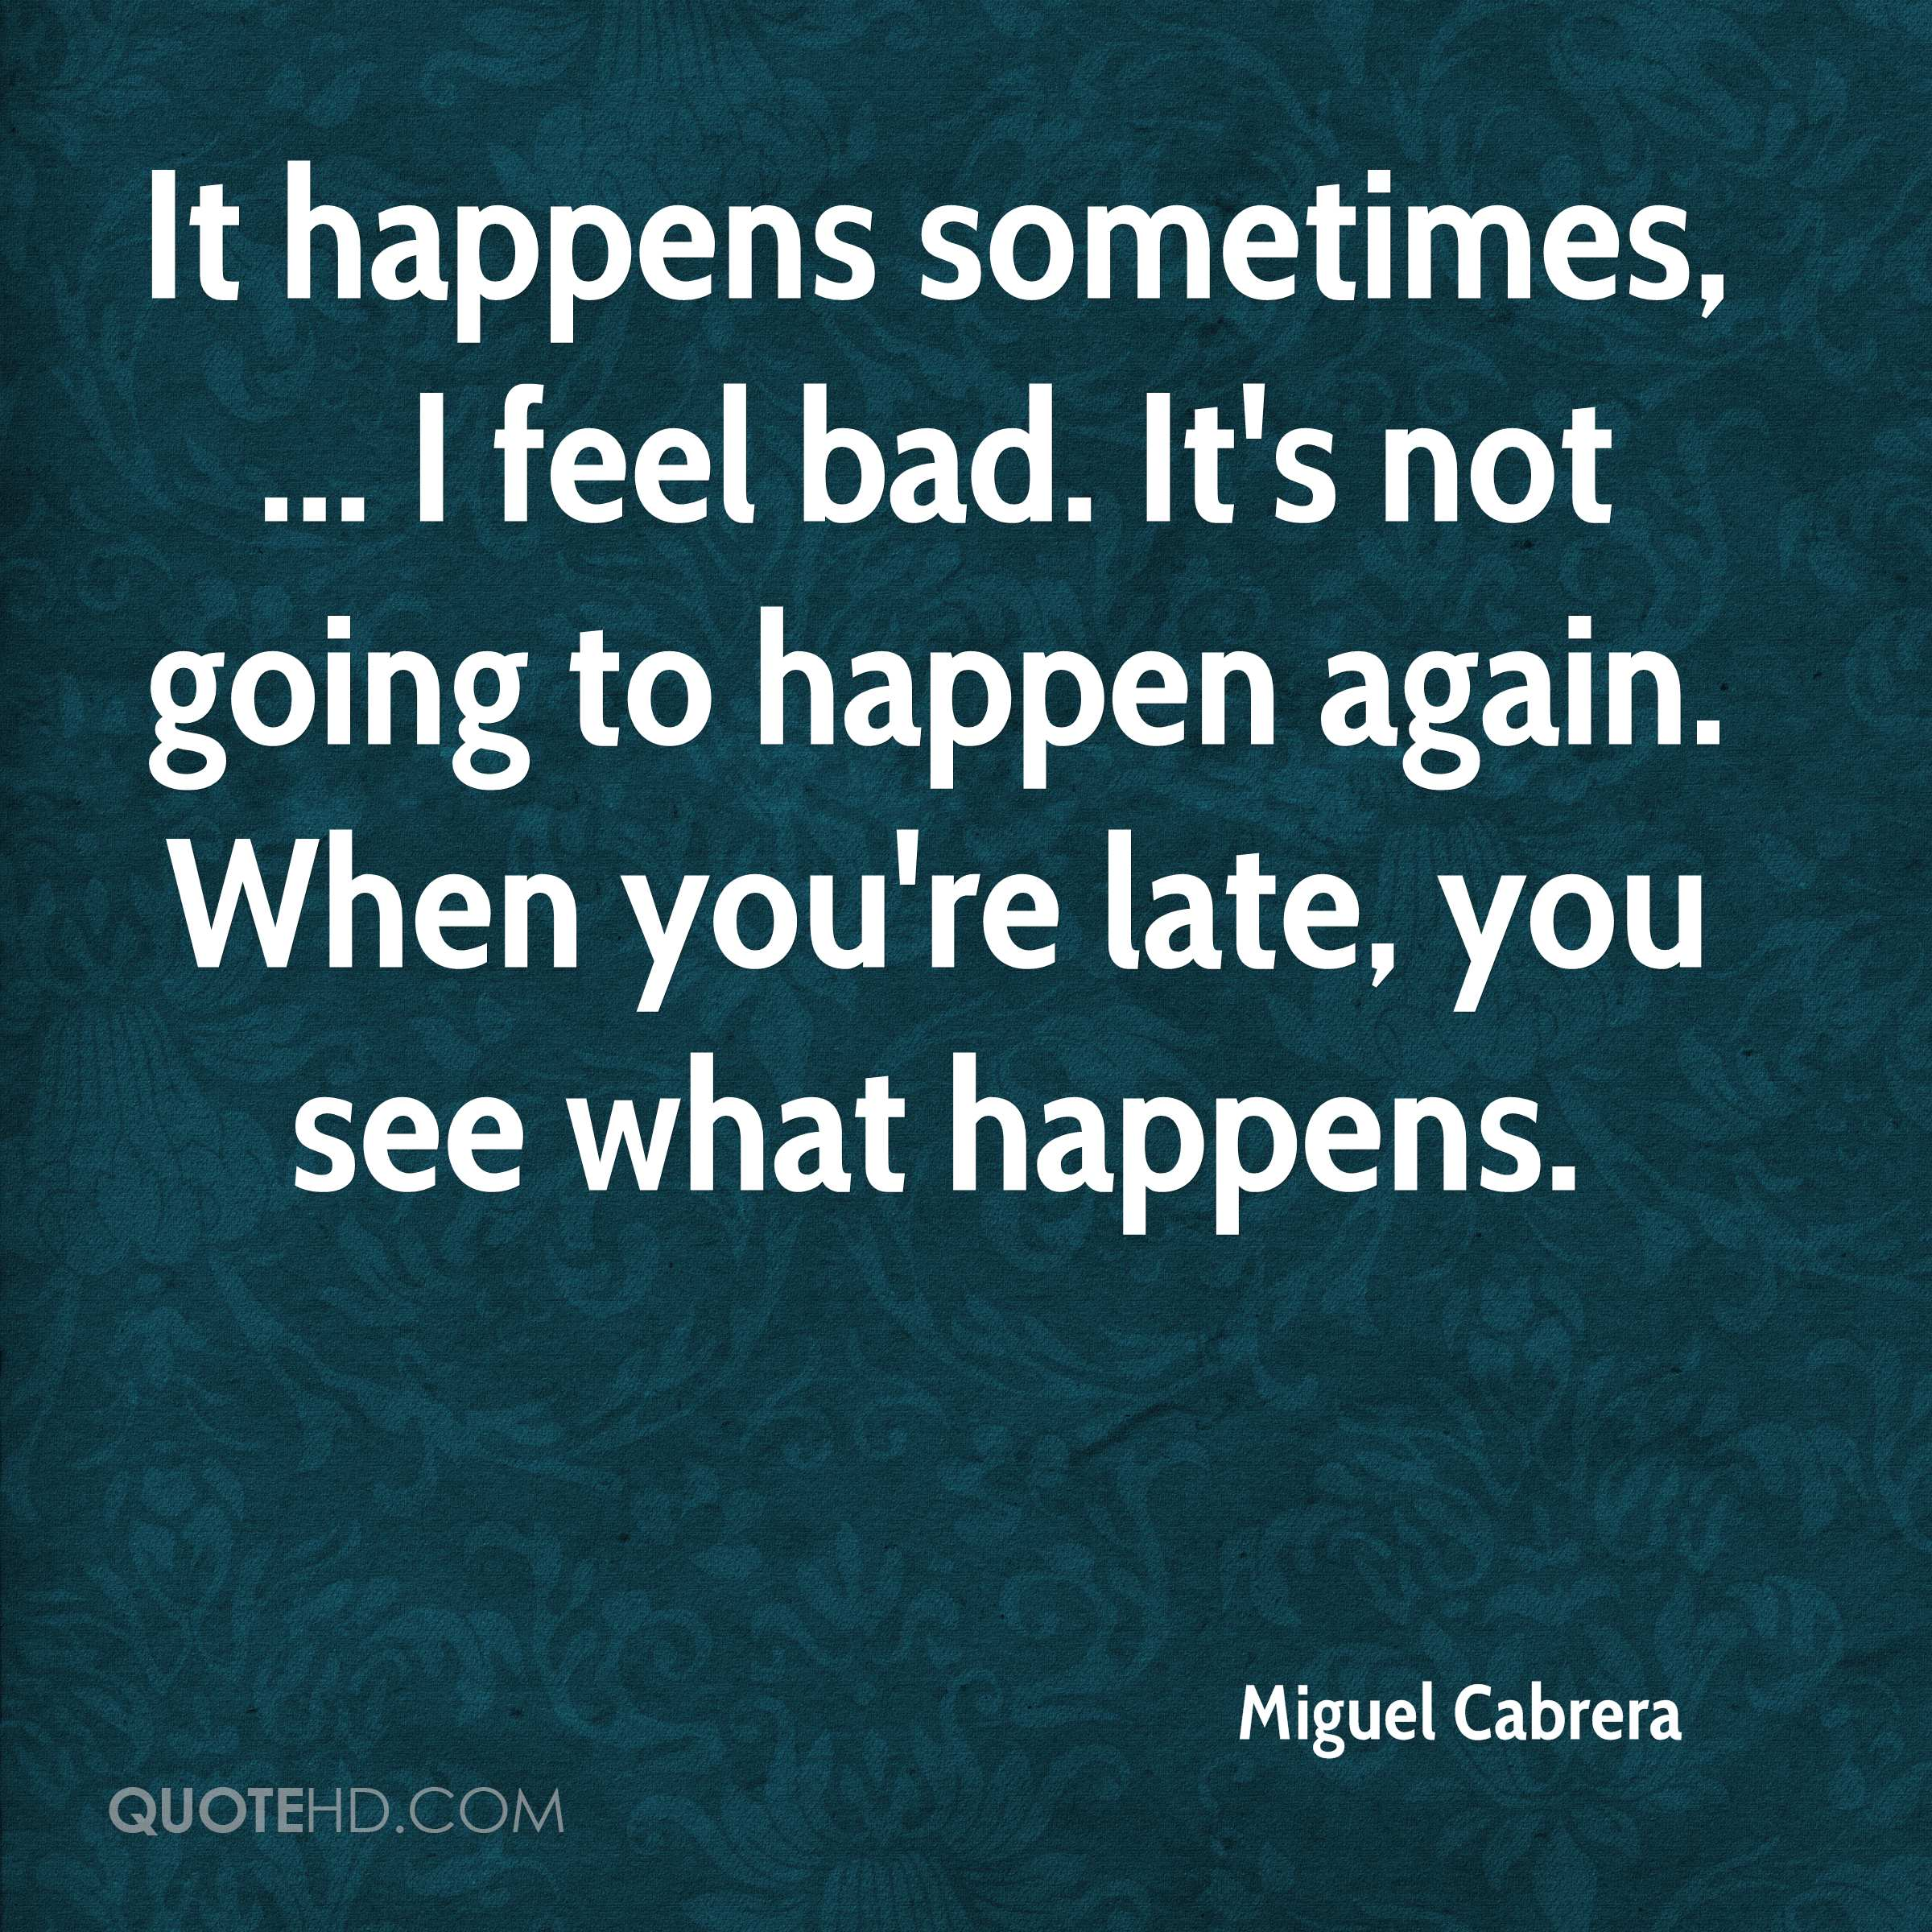 It happens sometimes, ... I feel bad. It's not going to happen again. When you're late, you see what happens.